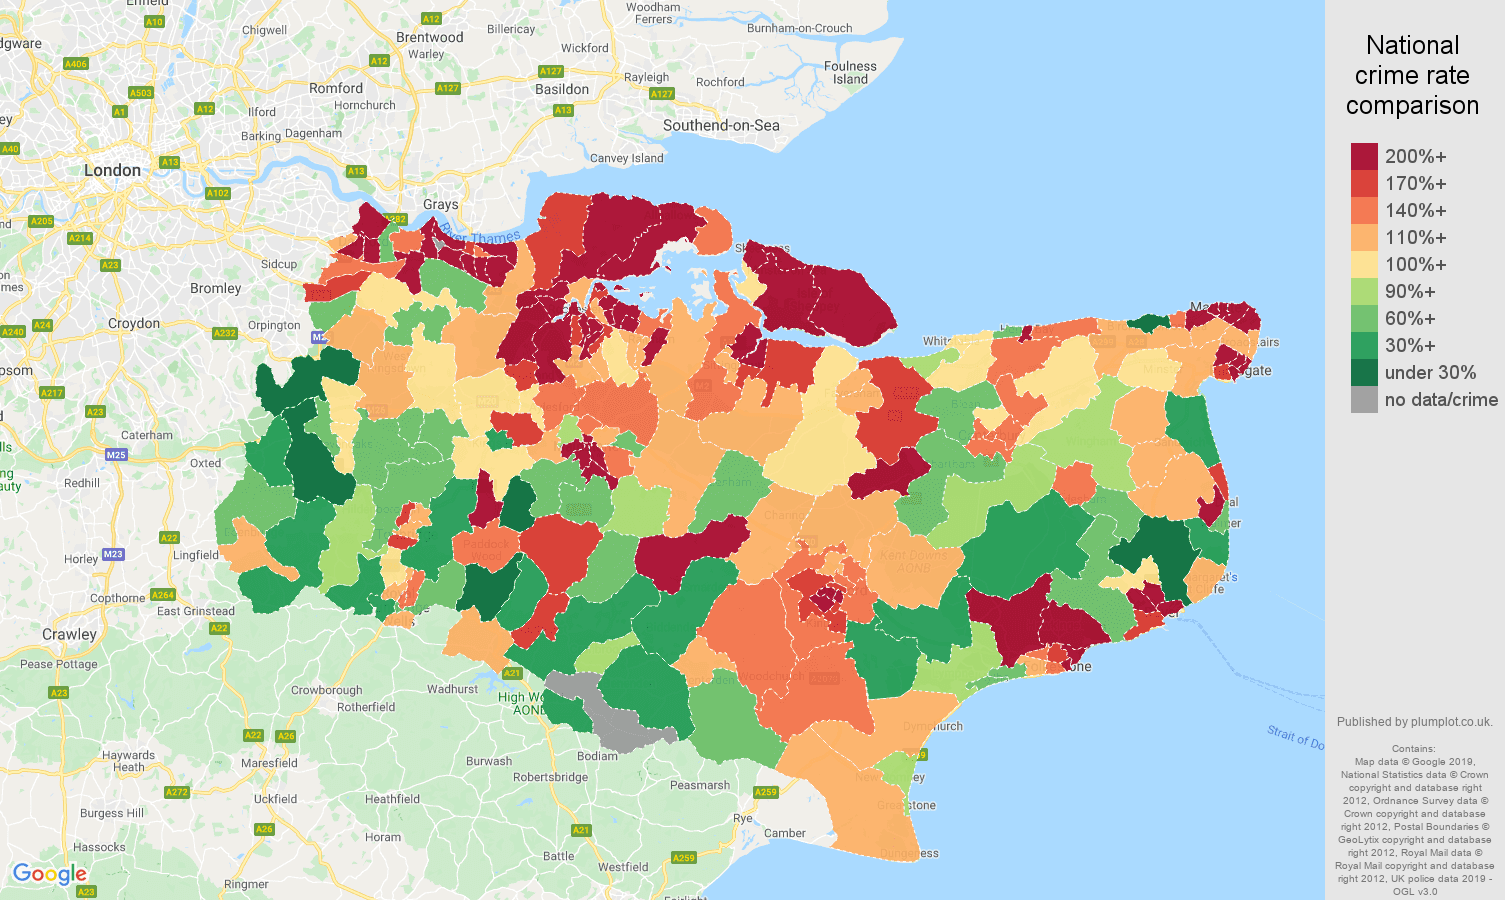 Kent other crime rate comparison map